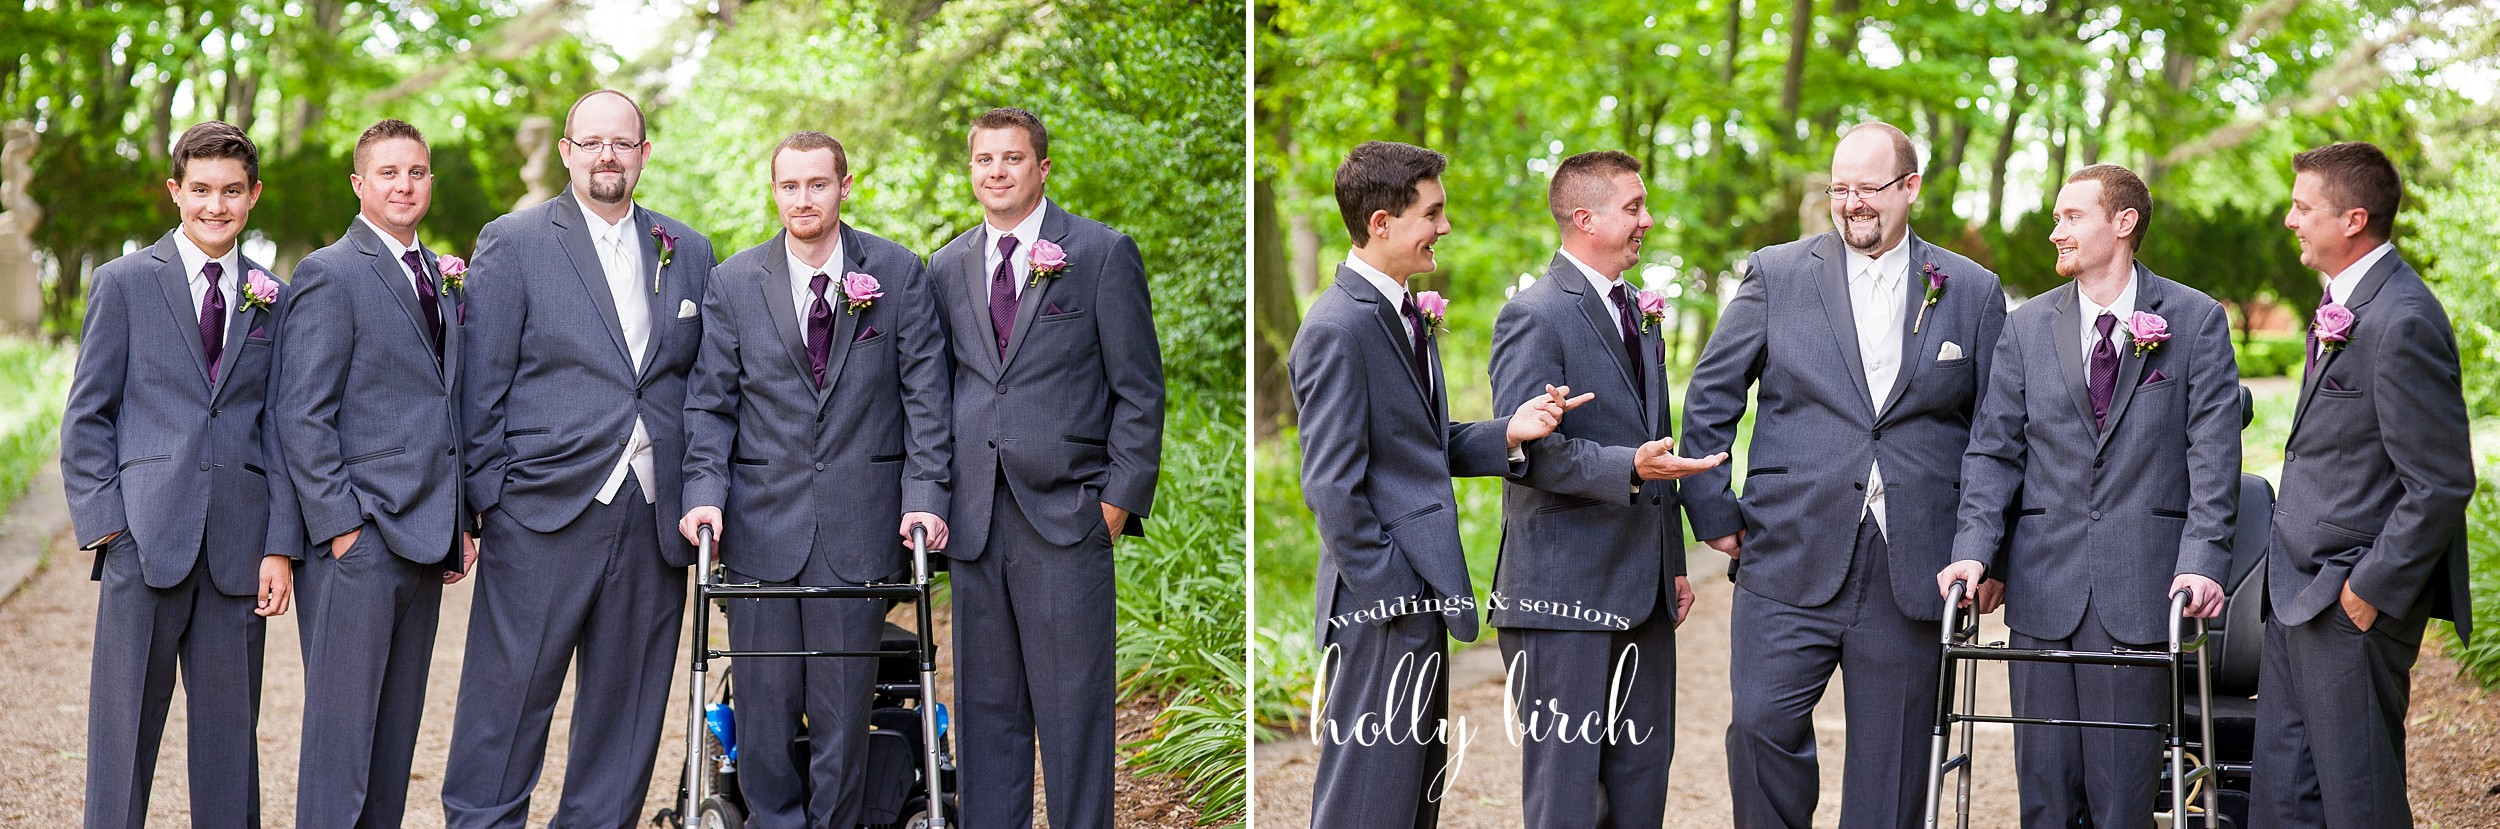 groomsmen dark gray tuxes